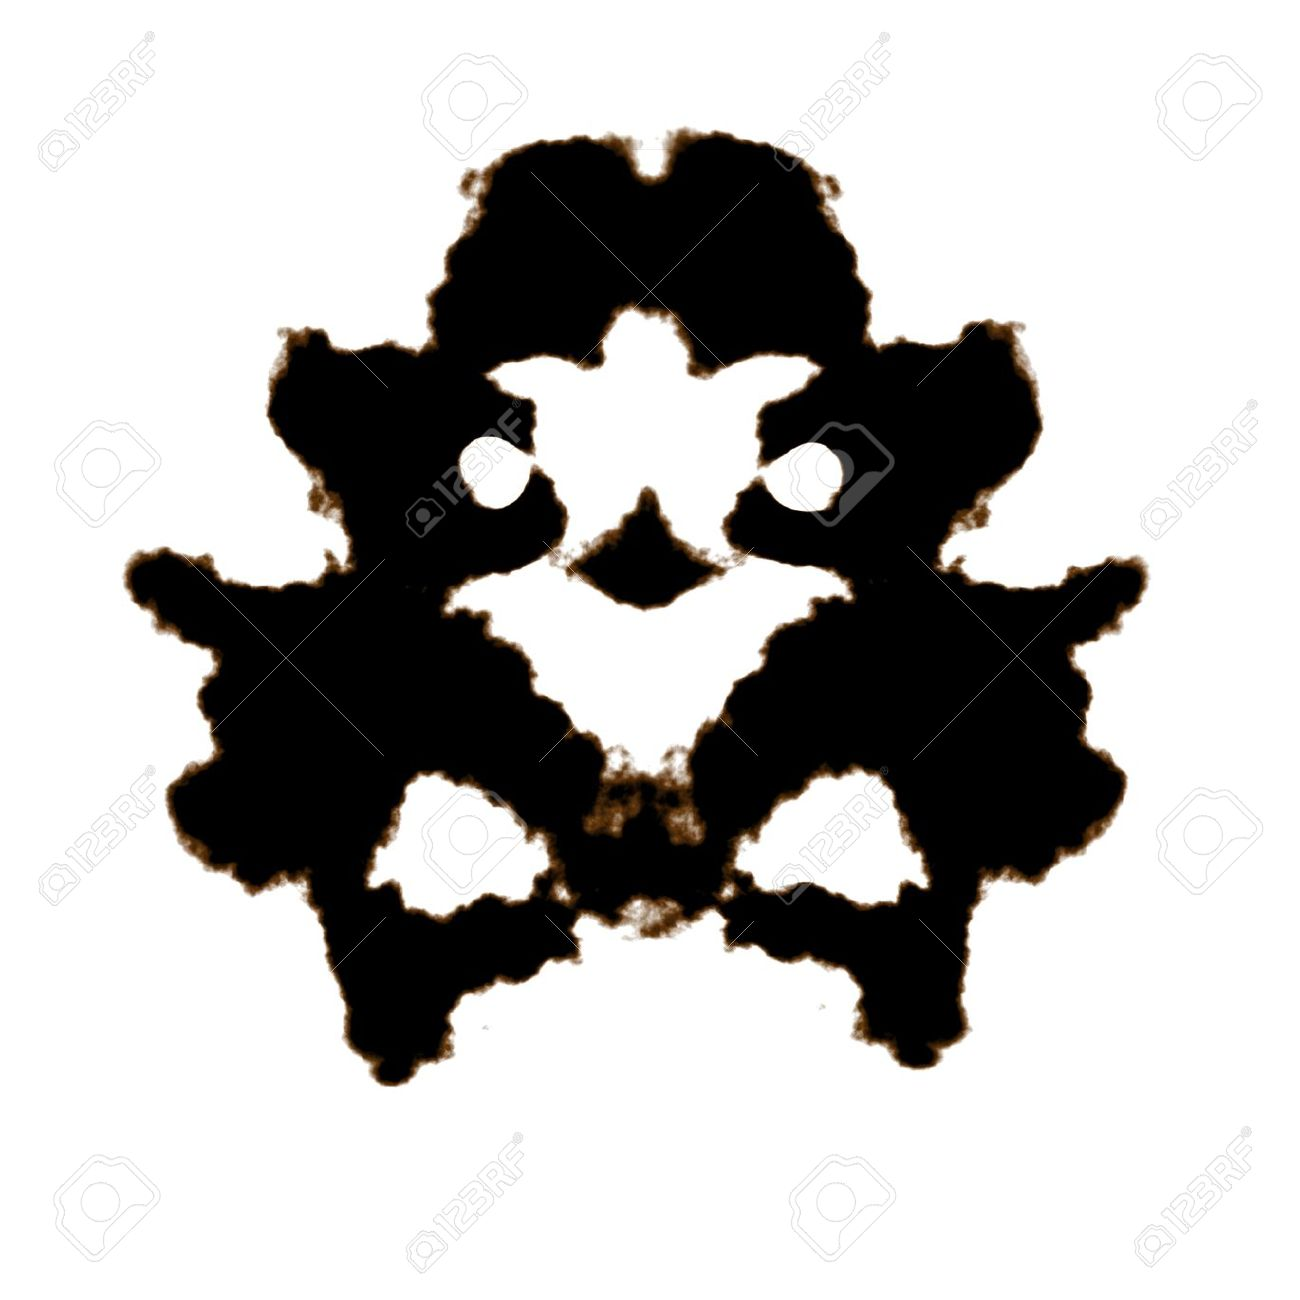 Rorschach Test Of An Ink Blot Card Stock Photo, Picture And.